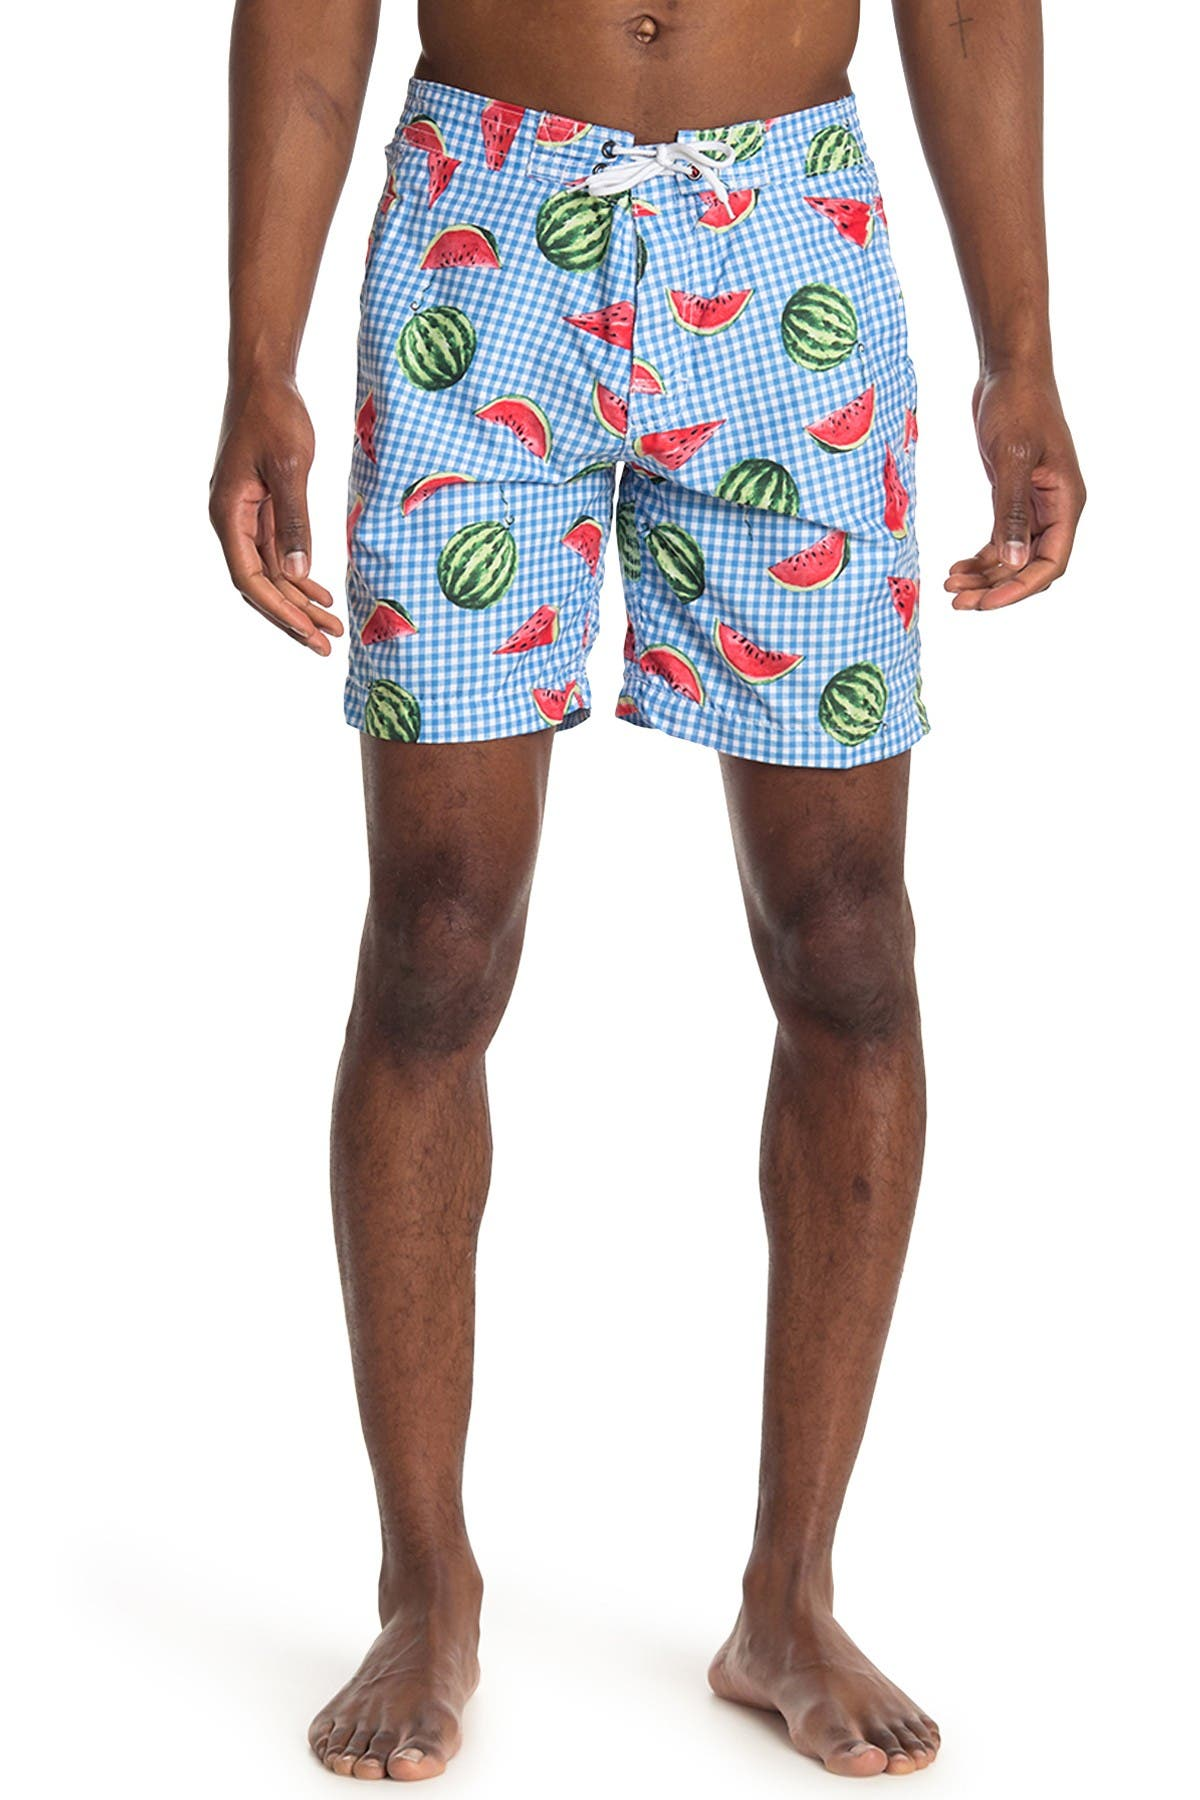 Image of Trunks Surf and Swim CO. Swami Watermelon Print Board Shorts